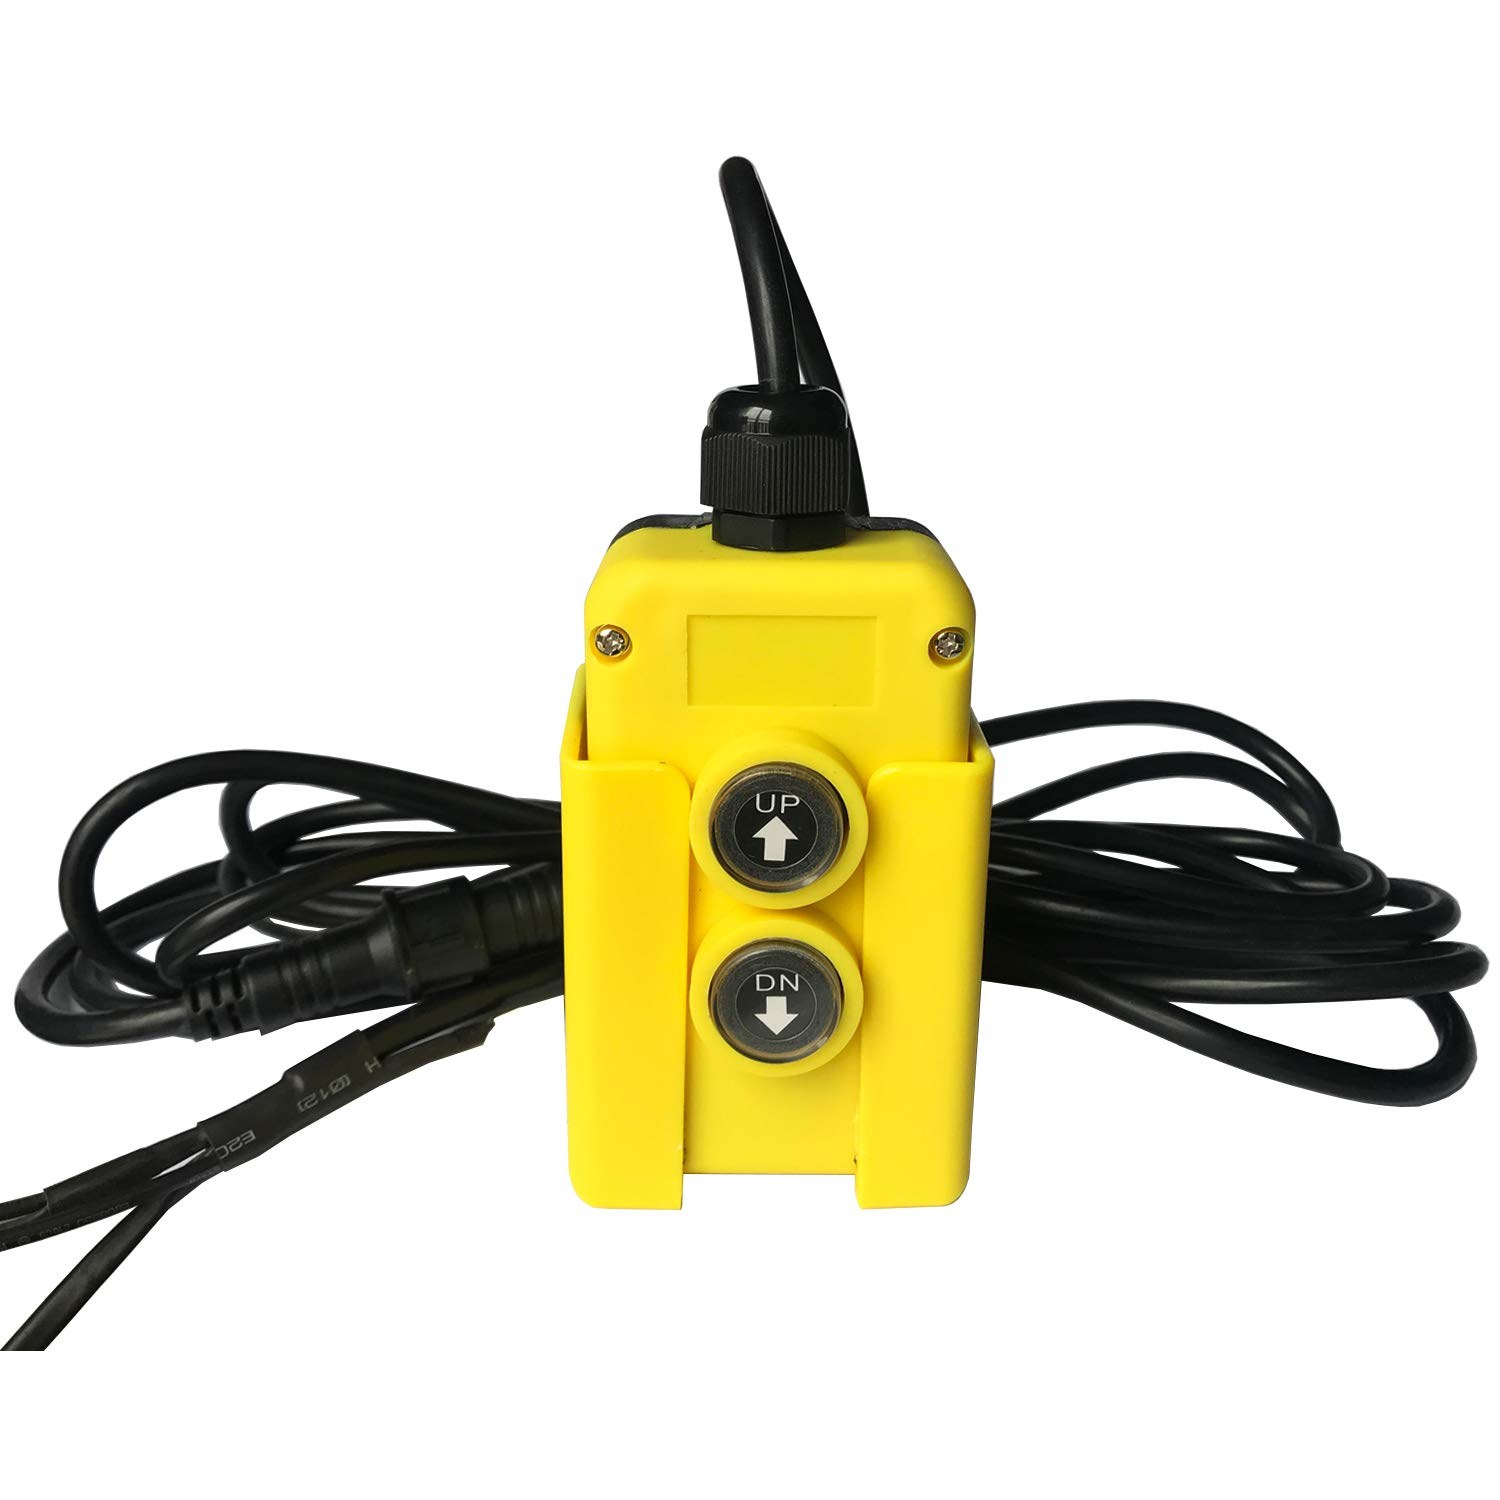 3 Wire Dump Trailer Remote Control Switch for Dump Trailer with 12V DC Single Acting Hydraulic Pumps Truck